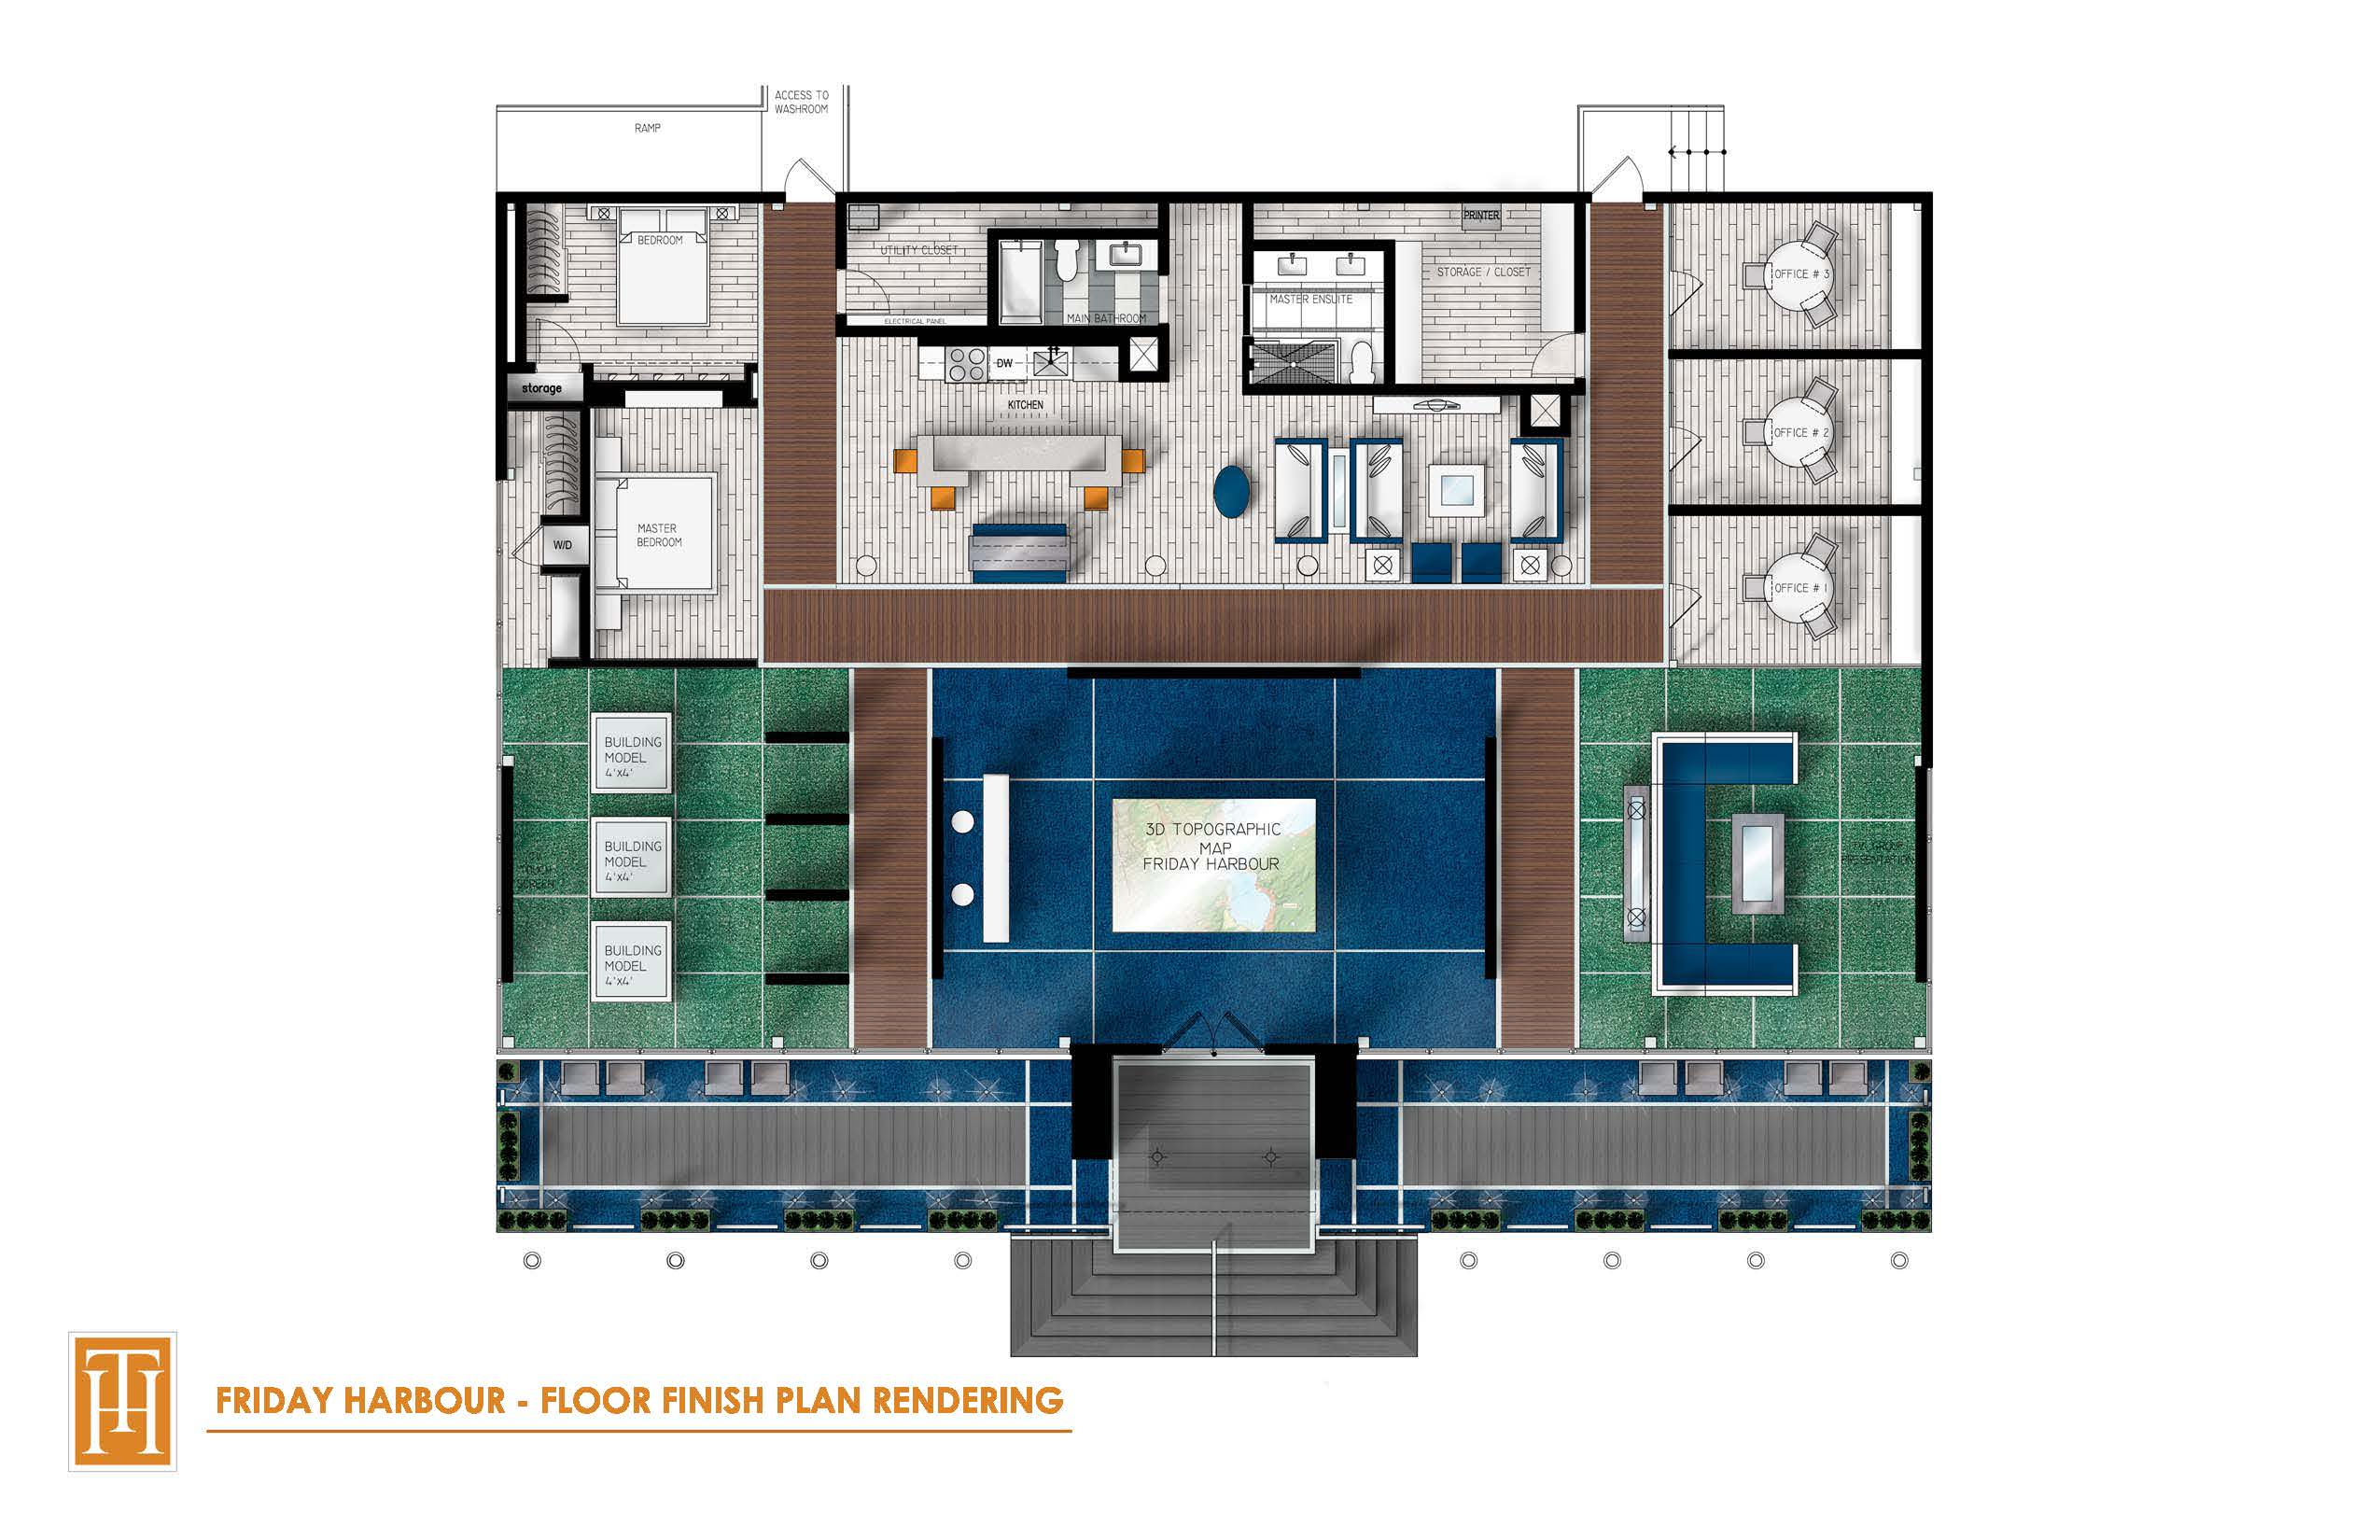 Friday Harbour Finish Floor Plan - 6 March 2014